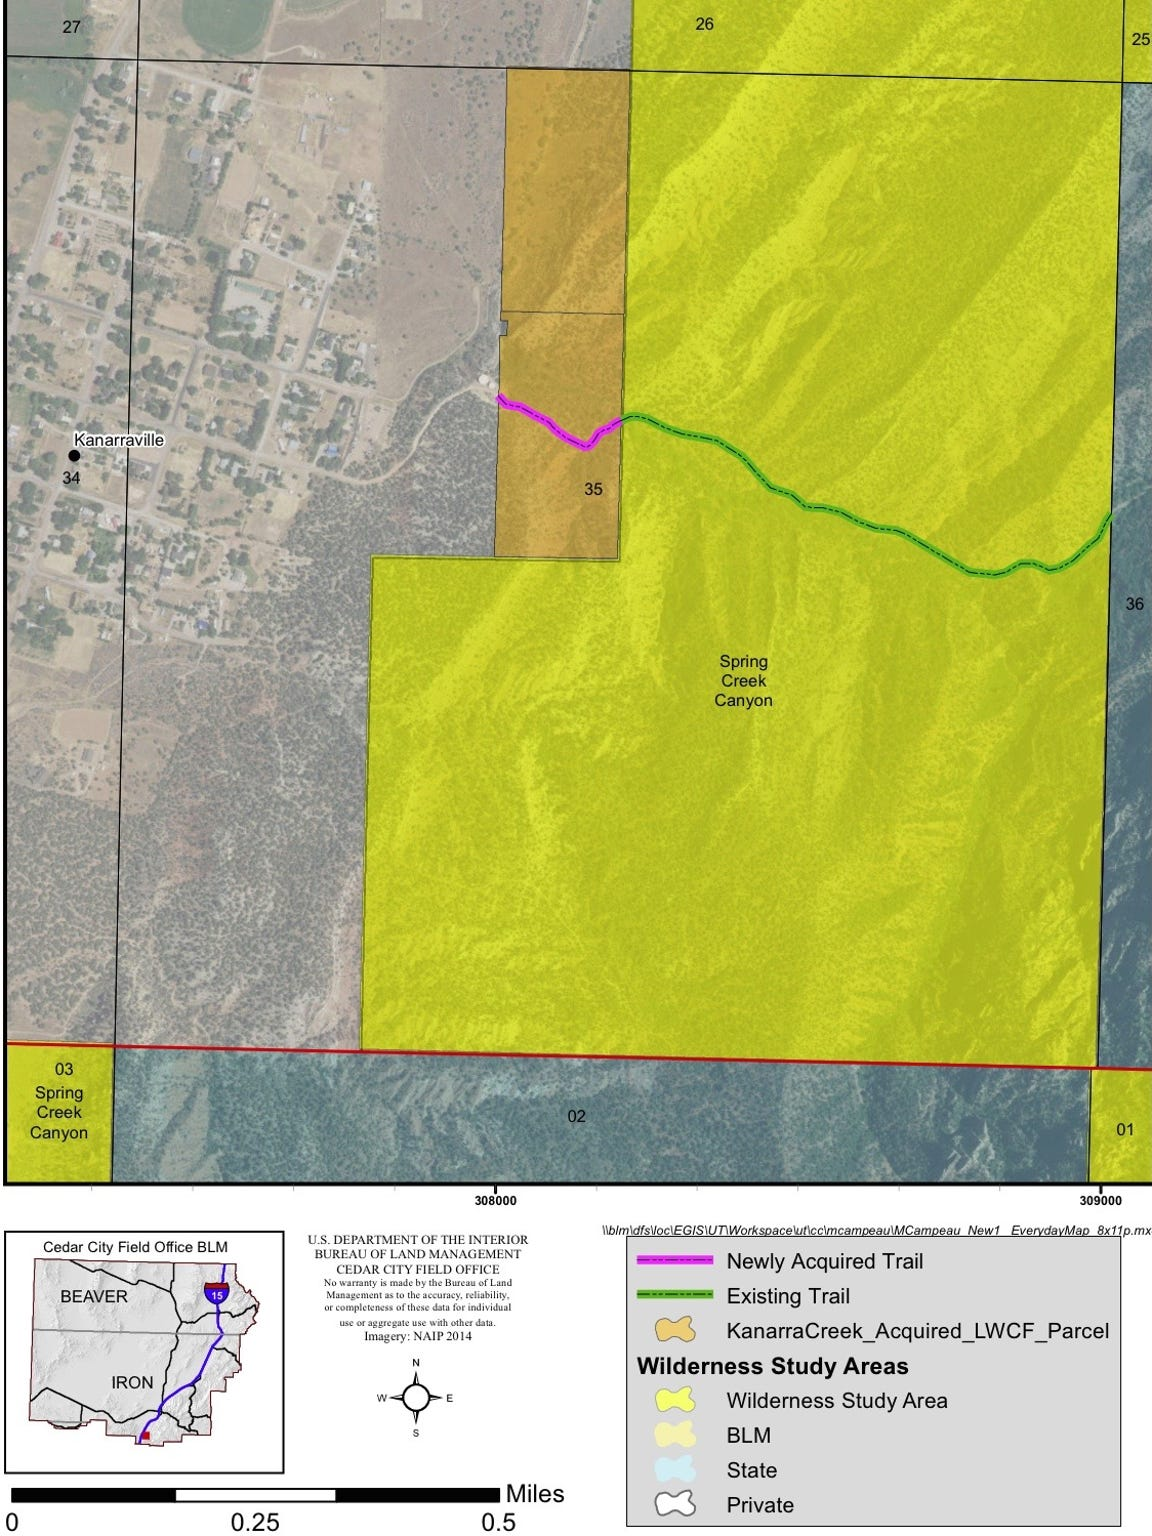 The BLM purchased 40-acres near Kanarraville Falls,